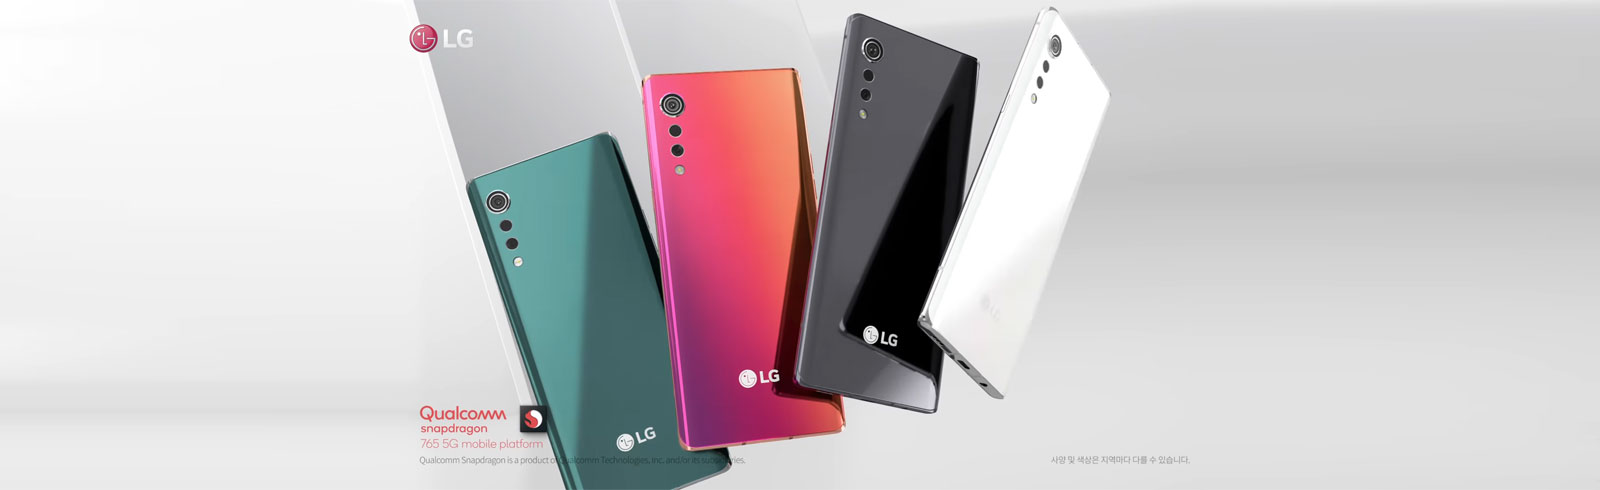 LG Velvet design teased in a video, will pack a Snapdragon 765G chipset